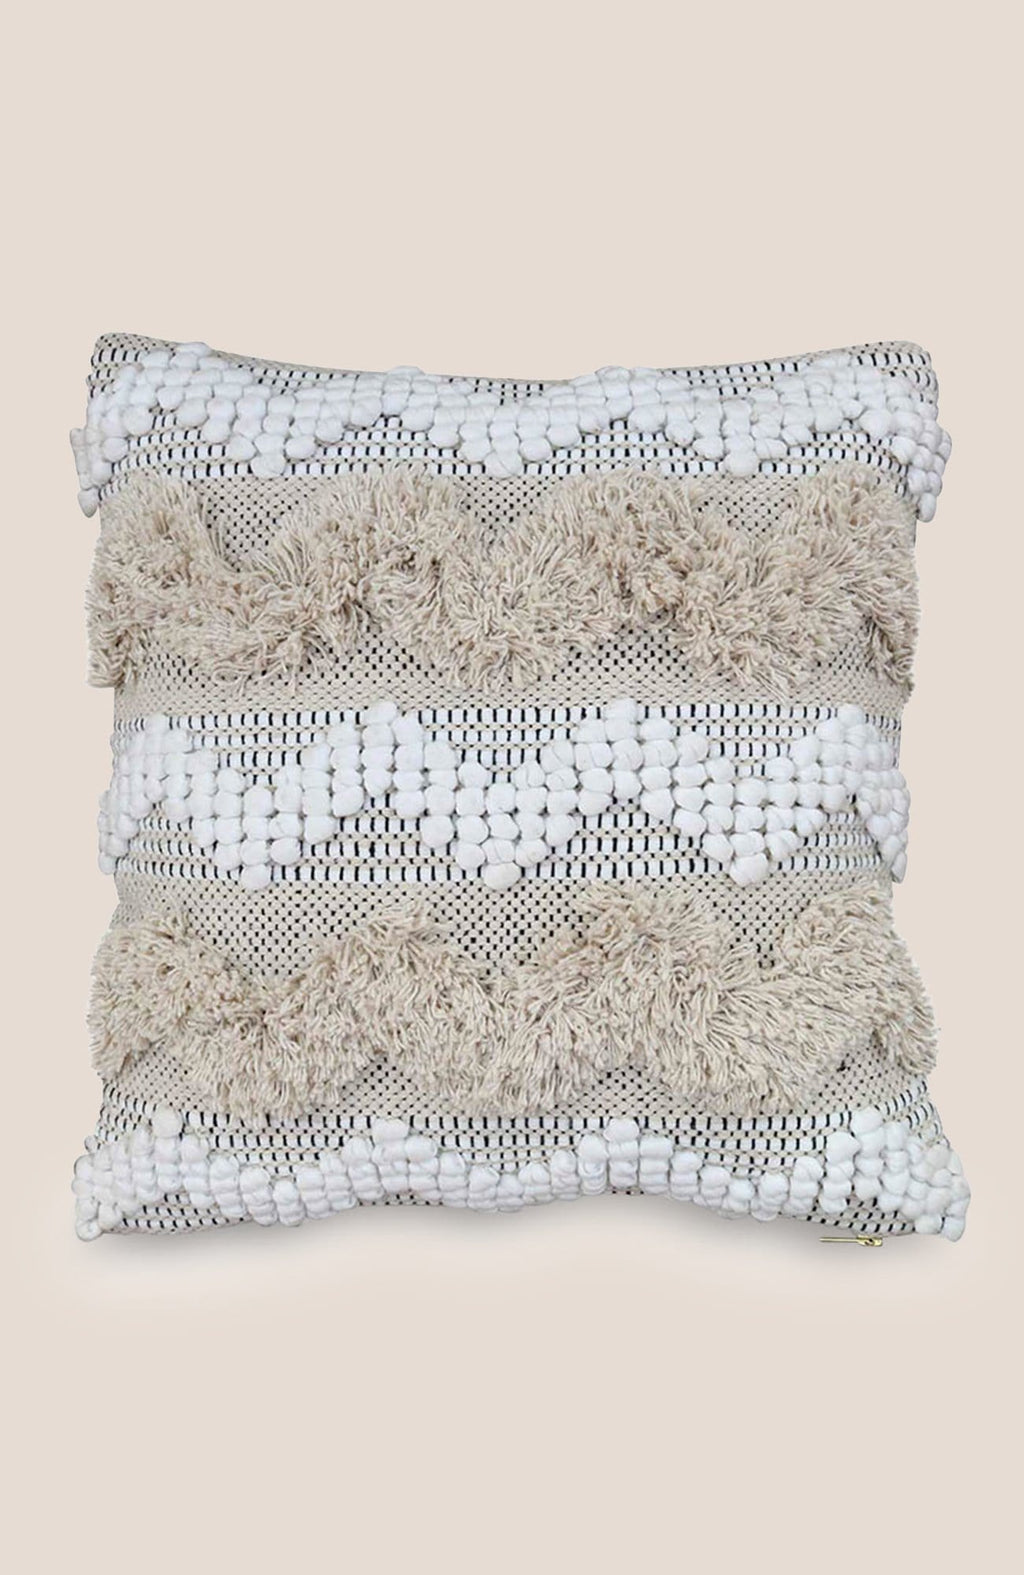 Pillow Cover Zen - Home Decor | Shop Baskets, Ceramics, Pillows, Rugs & Wall Hangs online